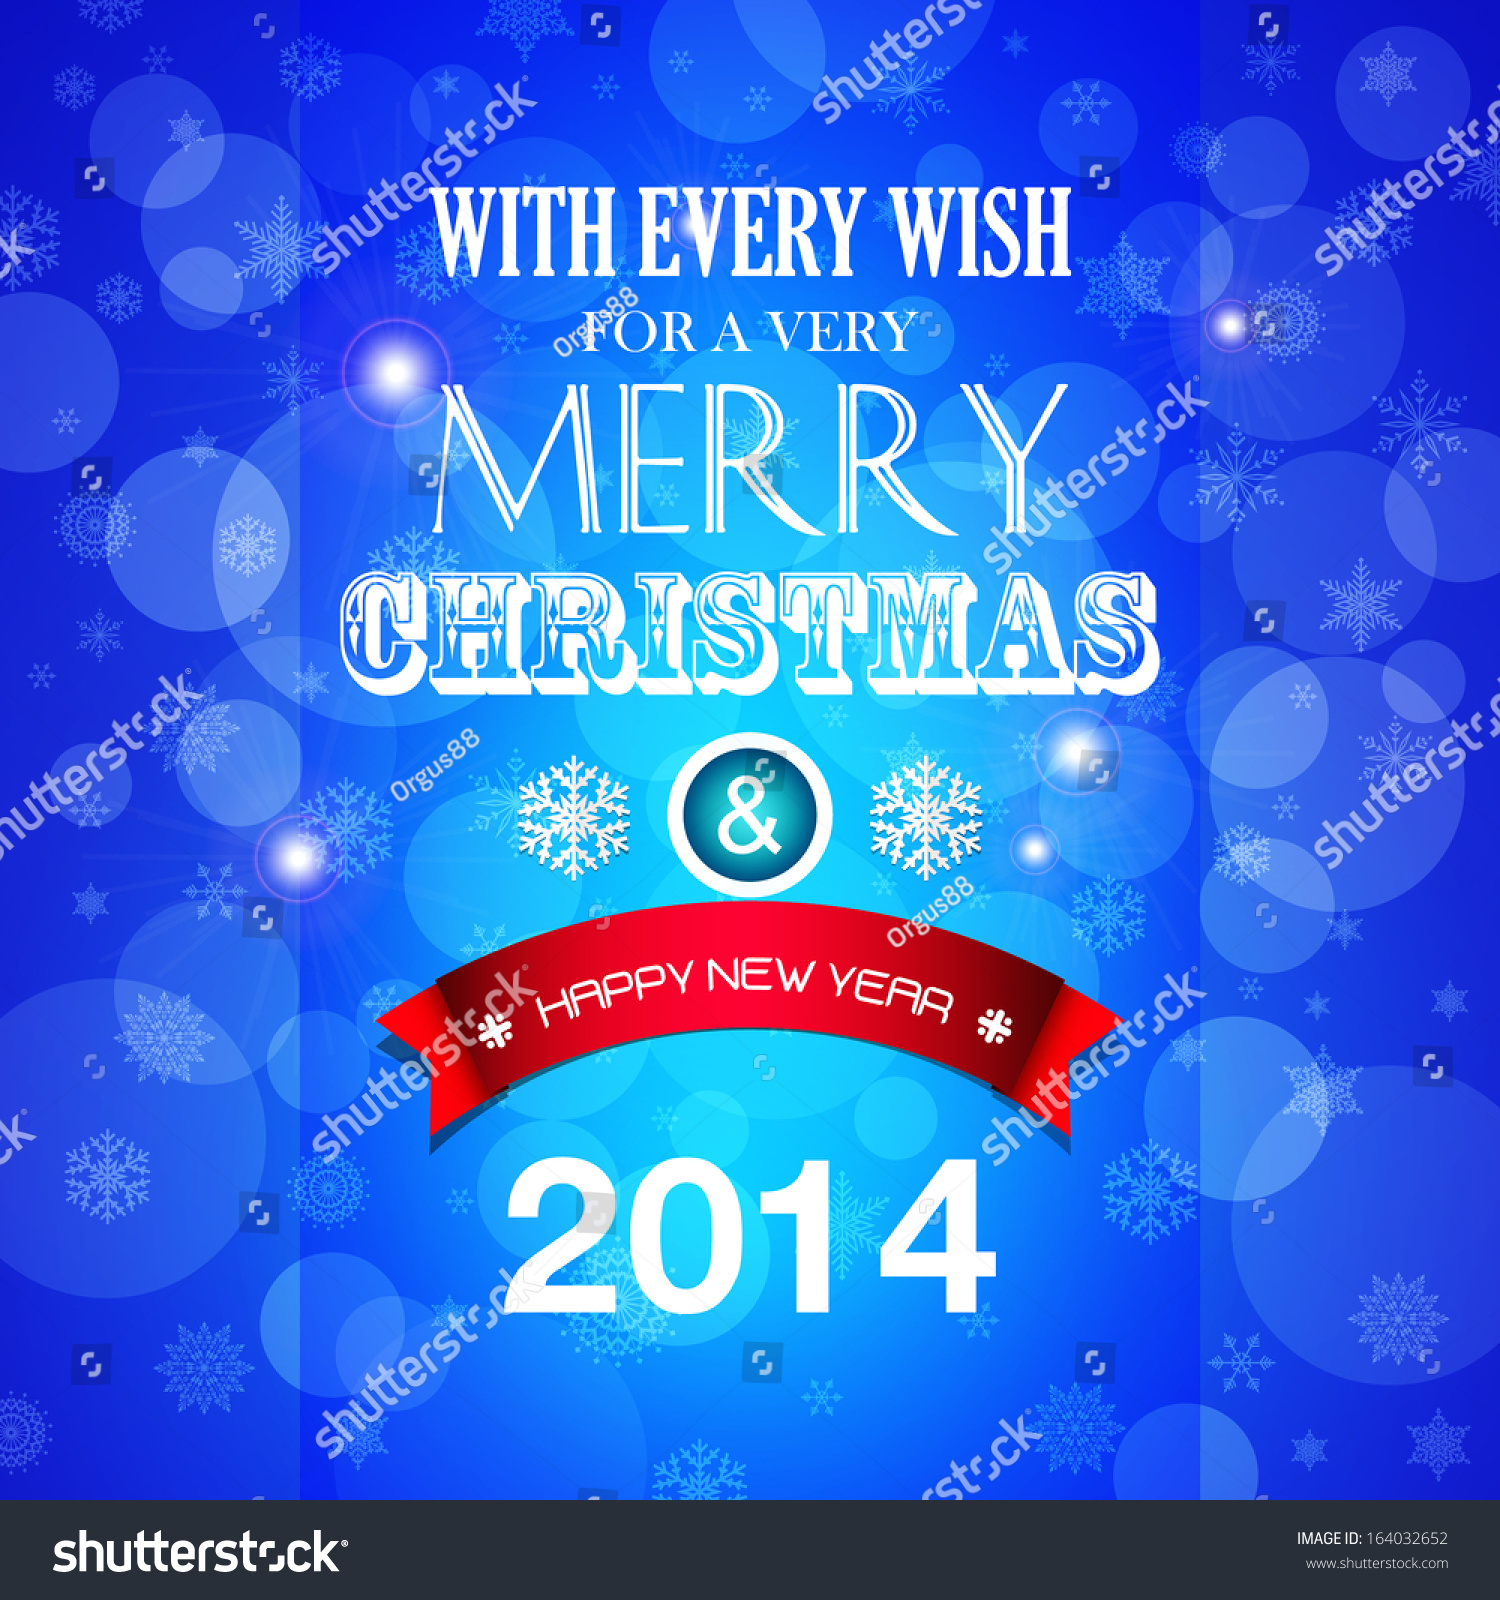 Merry christmas happy new year card stock vector royalty free merry christmas and happy new year card design christmas greeting card design m4hsunfo